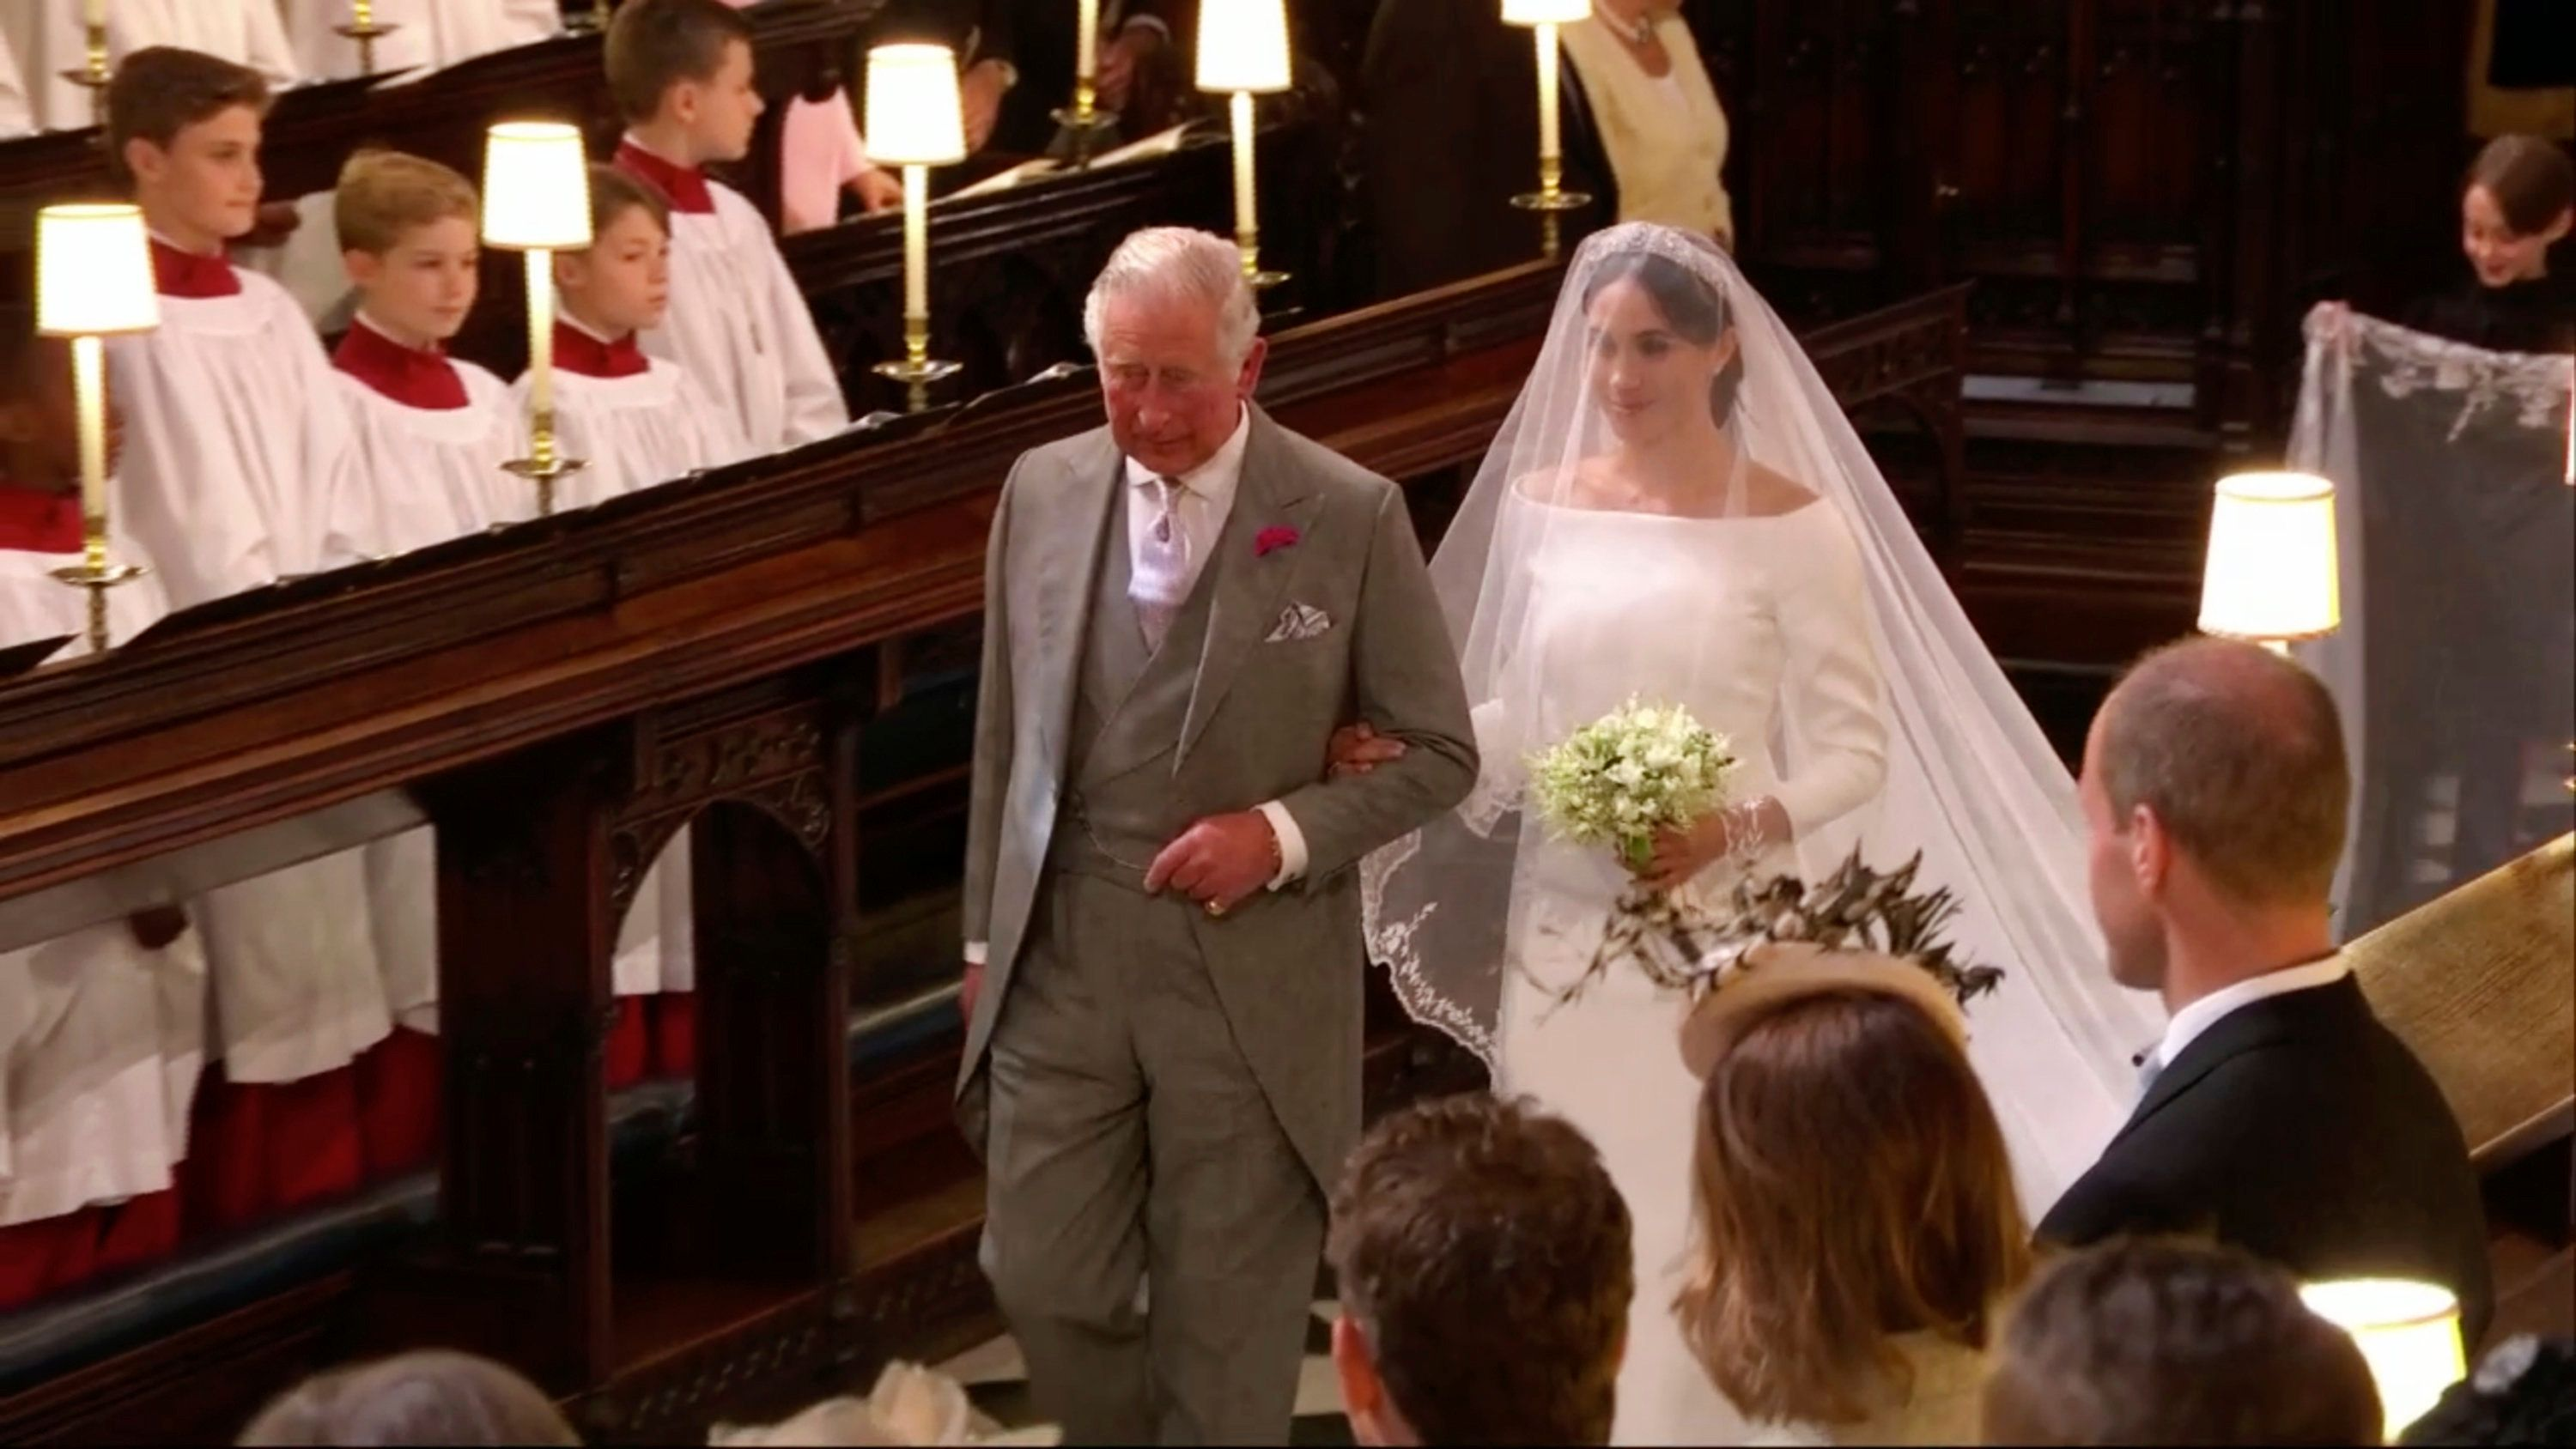 In this frame from video, Meghan Markle walks down the aisle with Prince Charles for her wedding ceremony at St. George's Chapel in Windsor Castle in Windsor, near London, England, Saturday, May 19, 2018.  (UK Pool/Sky News via AP)